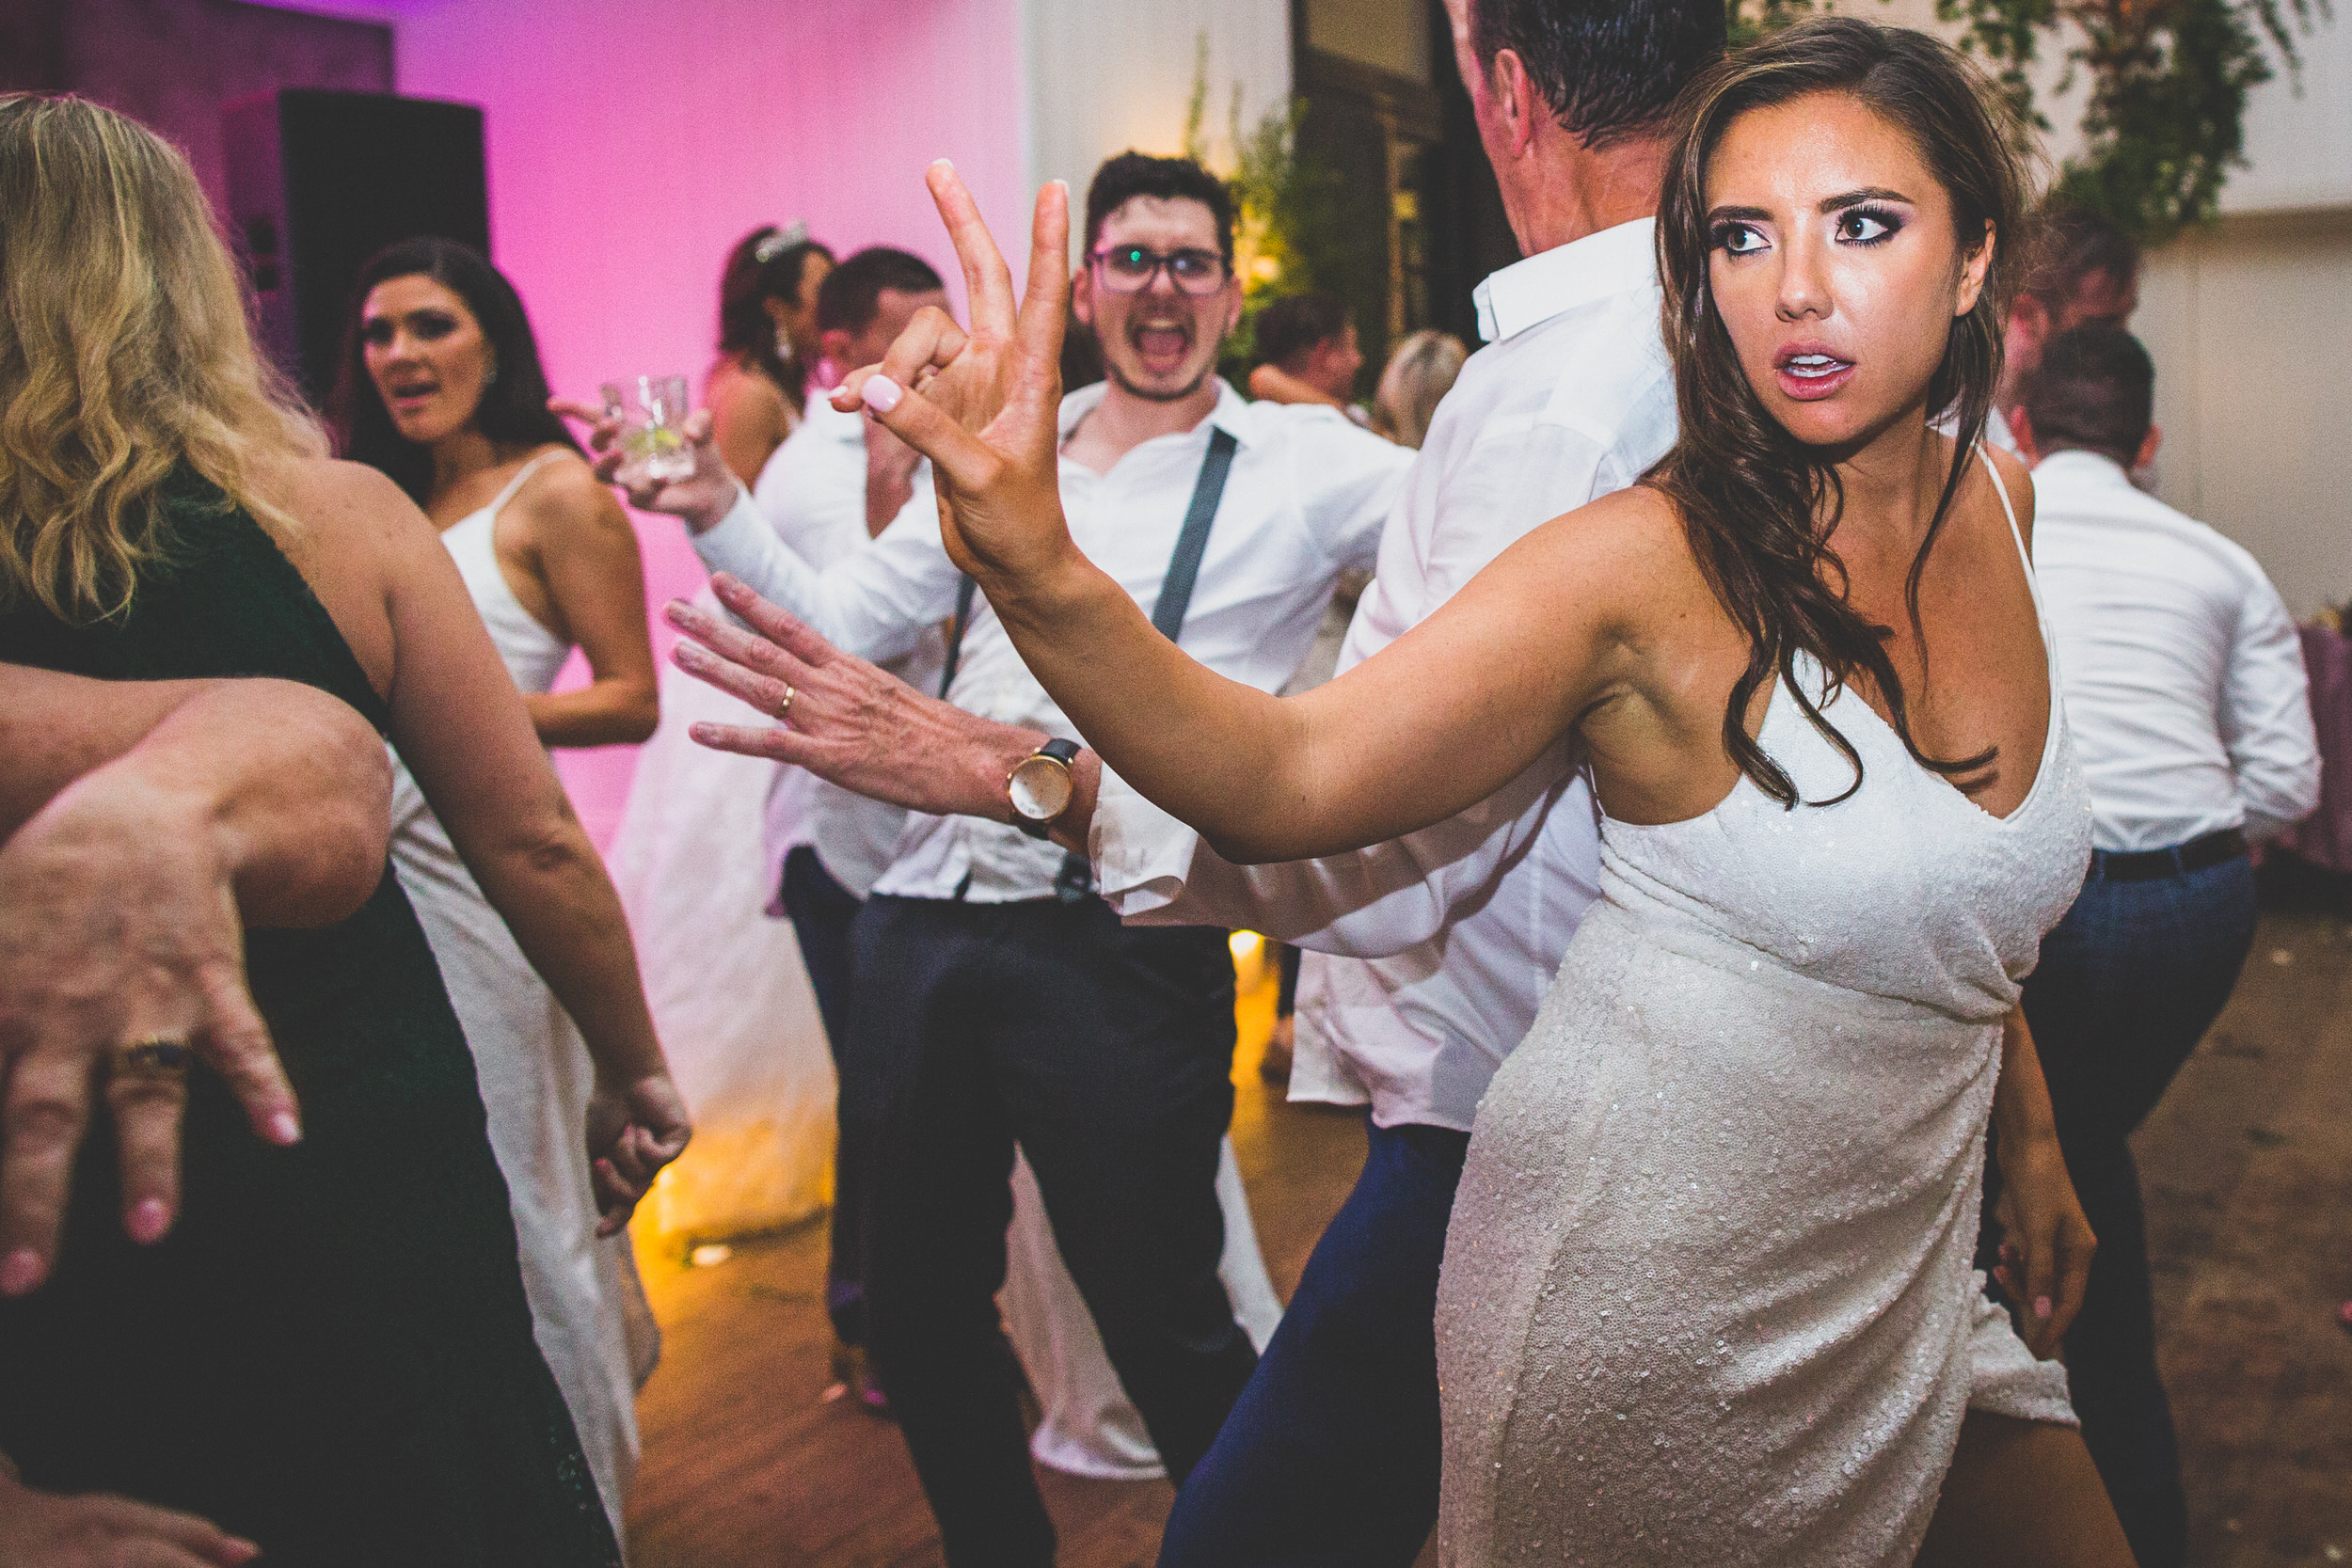 a bridesmaid showing the peace sign on the dance floor